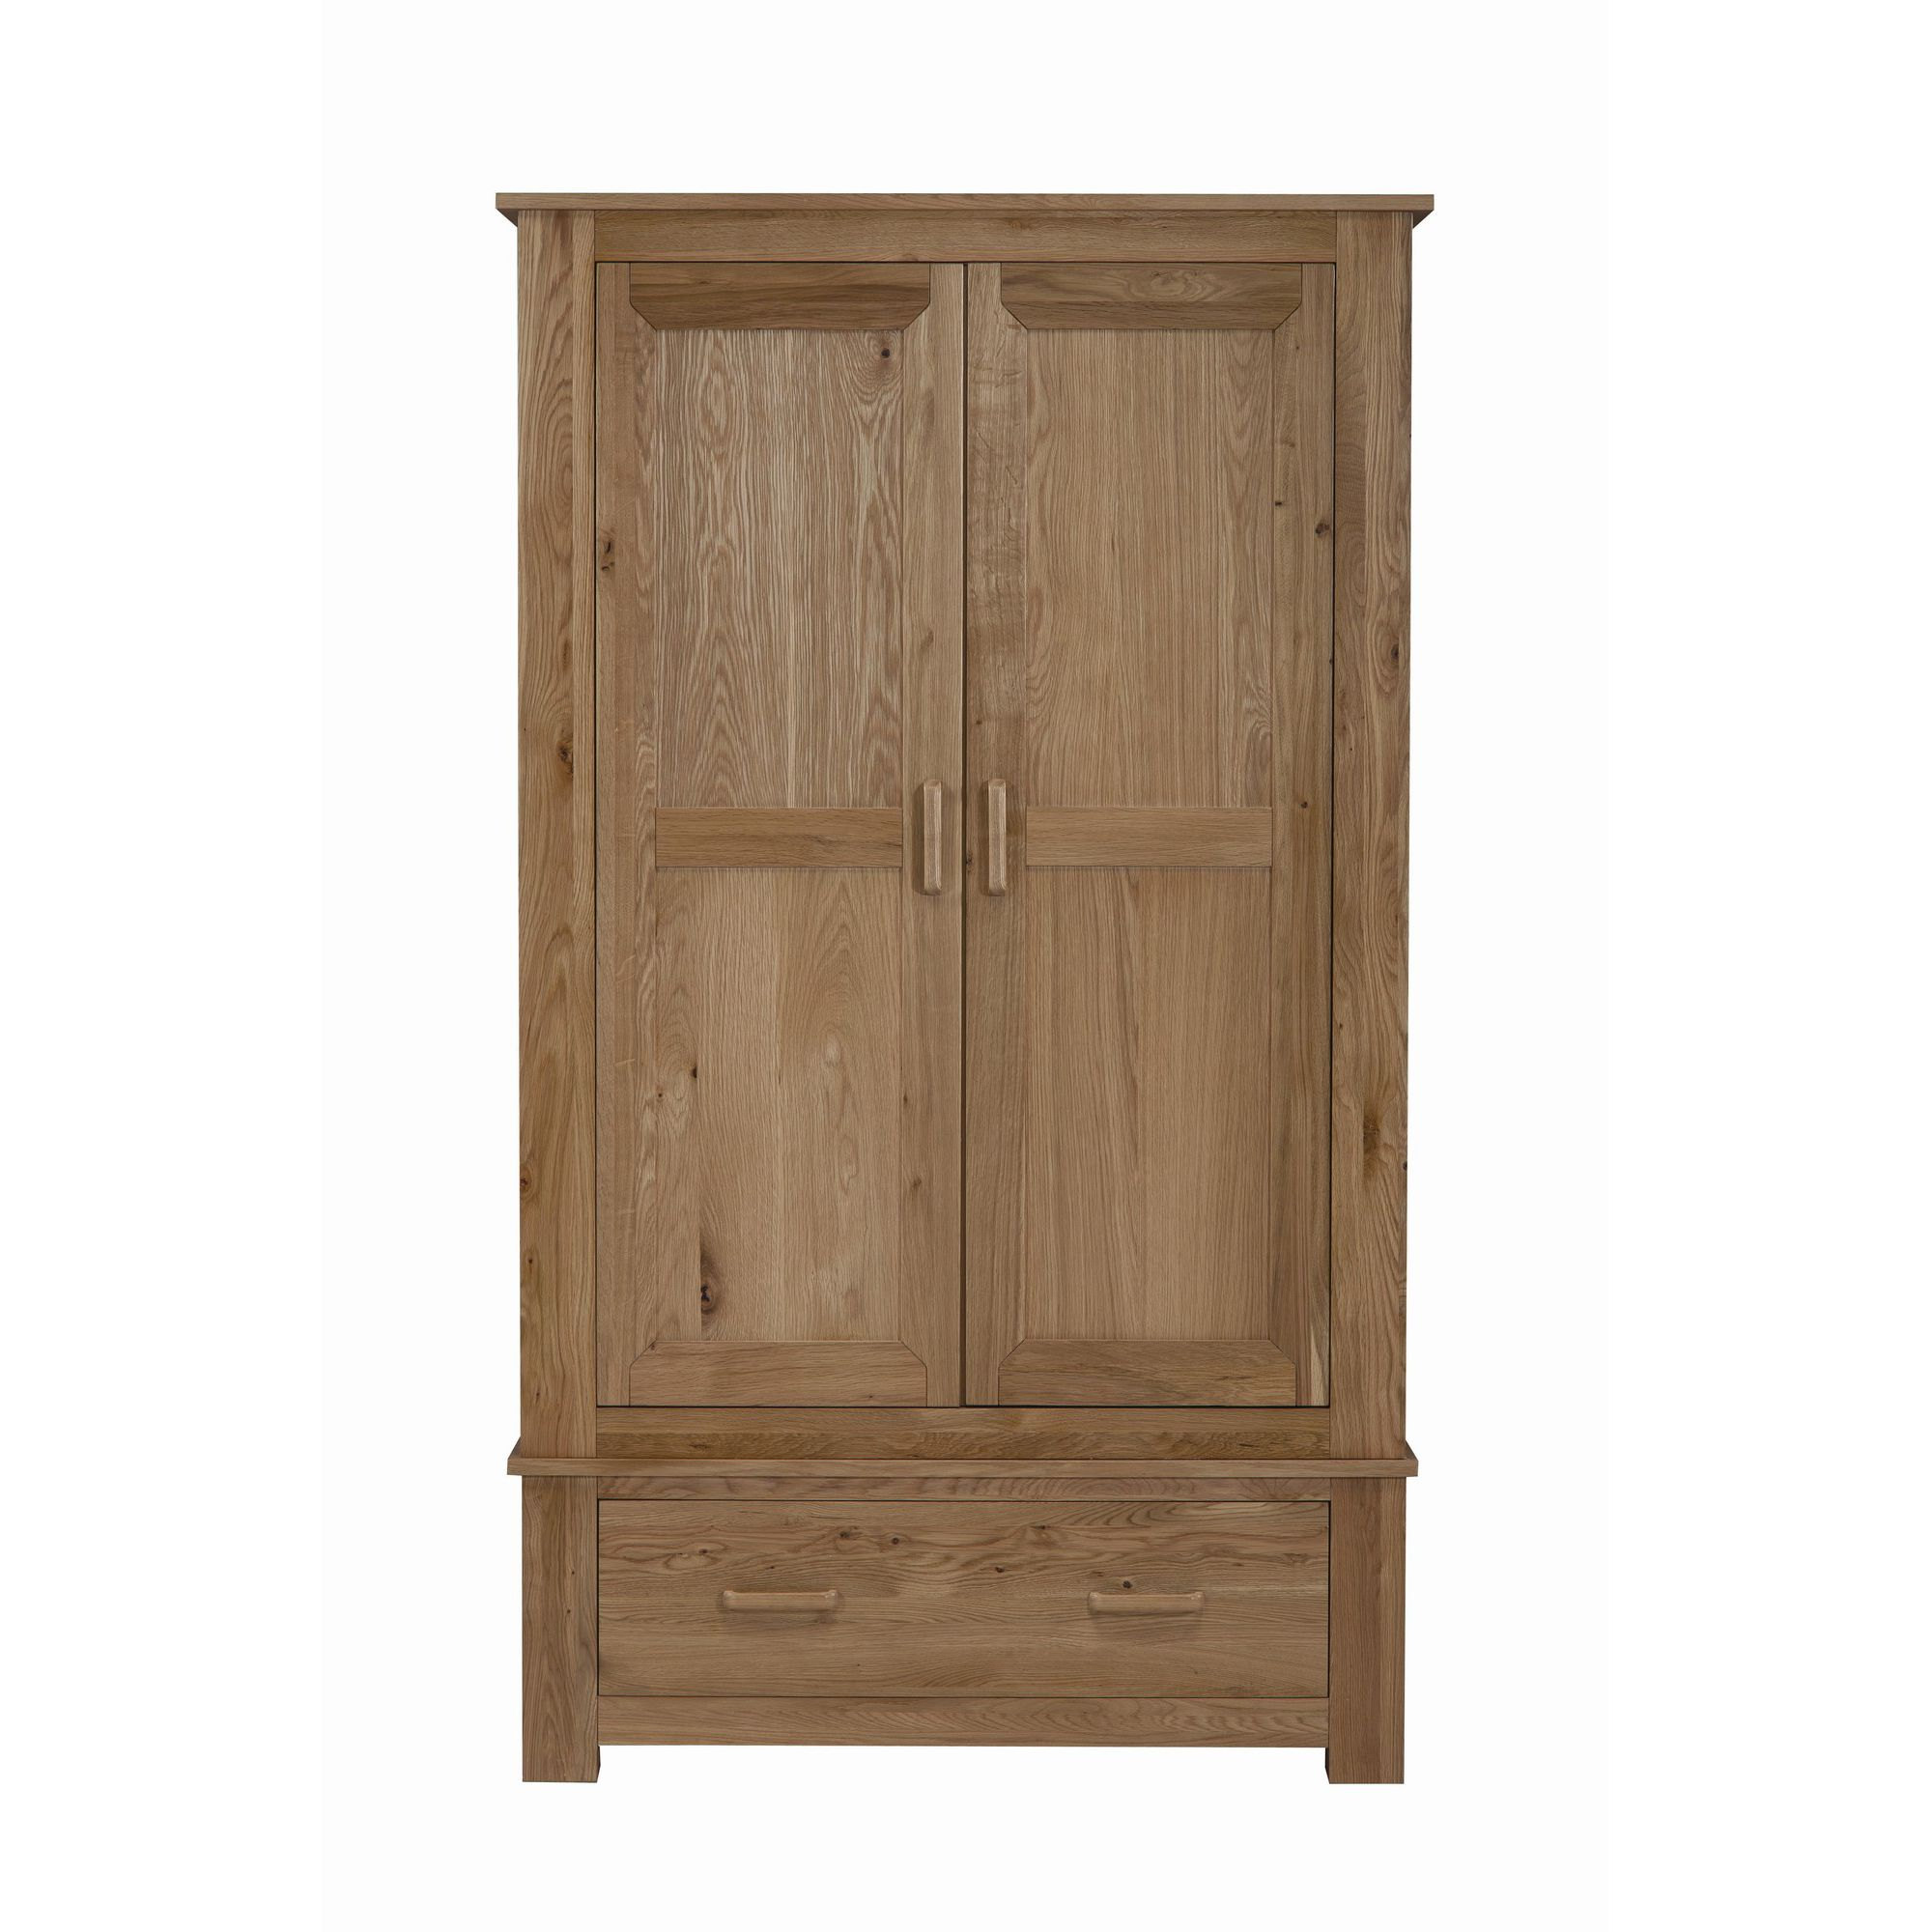 Alterton Furniture Wiltshire 2 Door with Drawer Wardrobe at Tescos Direct